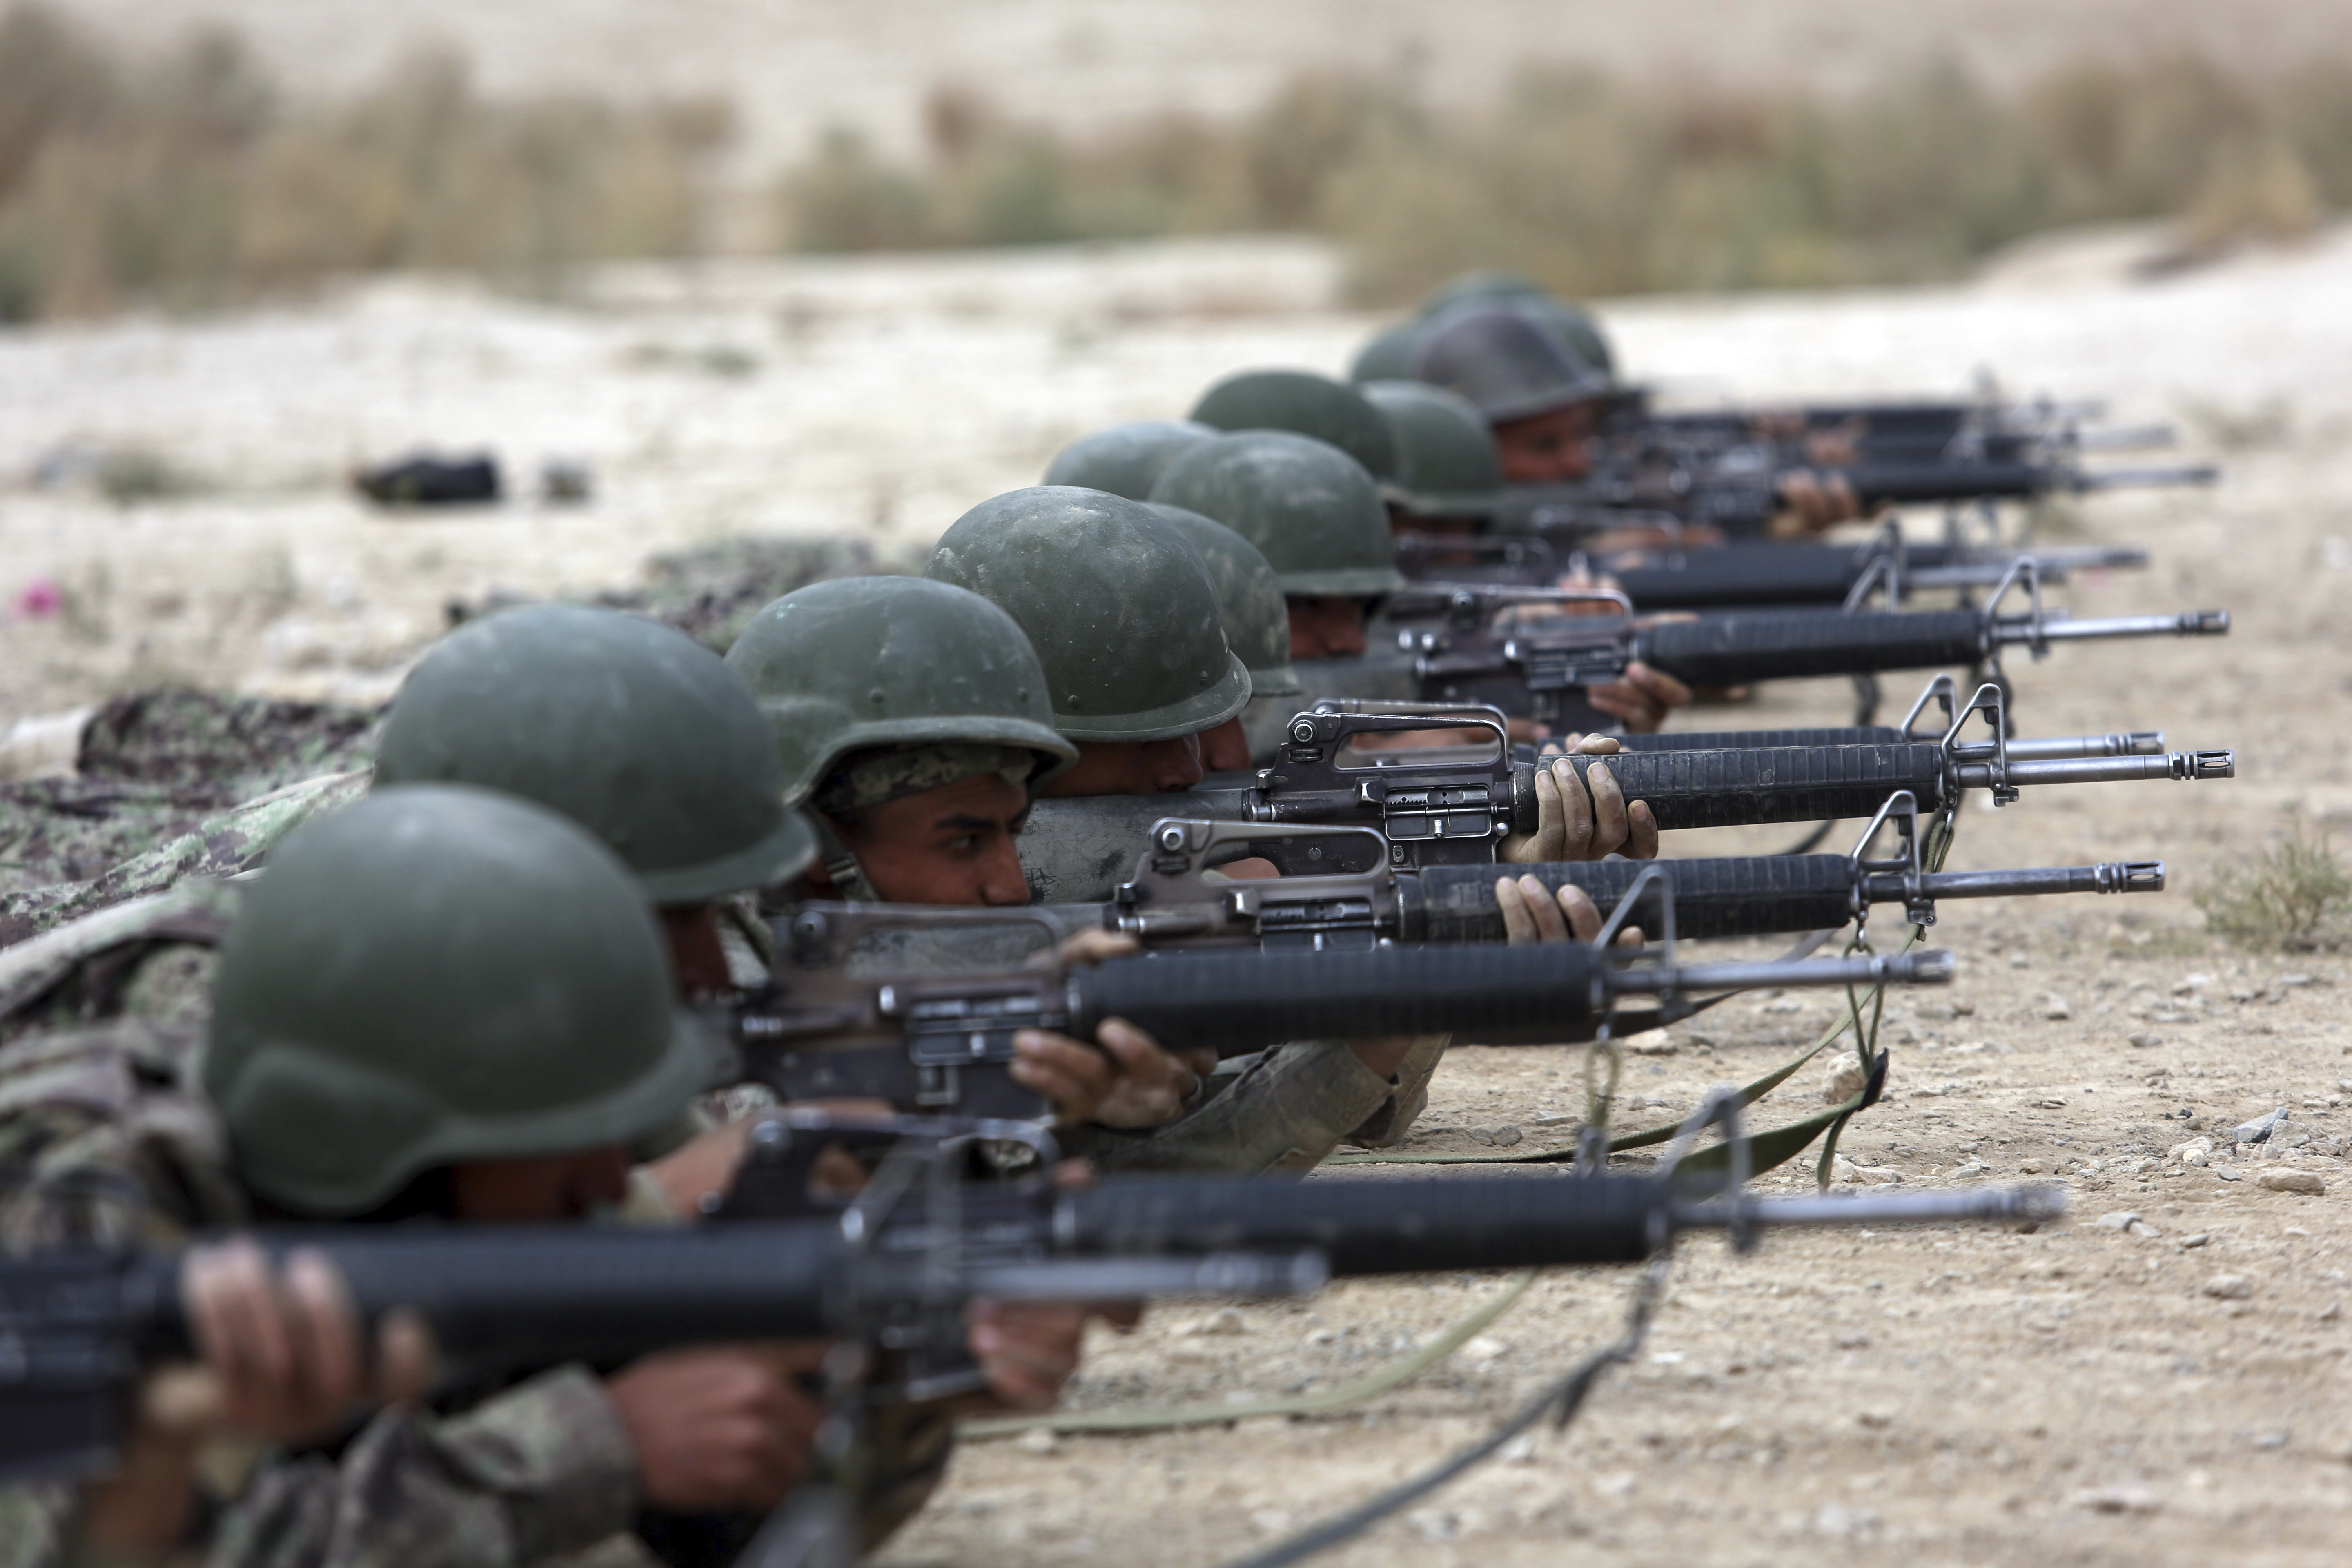 FILE - In this Oct. 31, 2018, file photo, Afghan National Army soldiers participate in a live fire training exercise, at the Afghan Military Academy, in Kabul, Afghanistan.